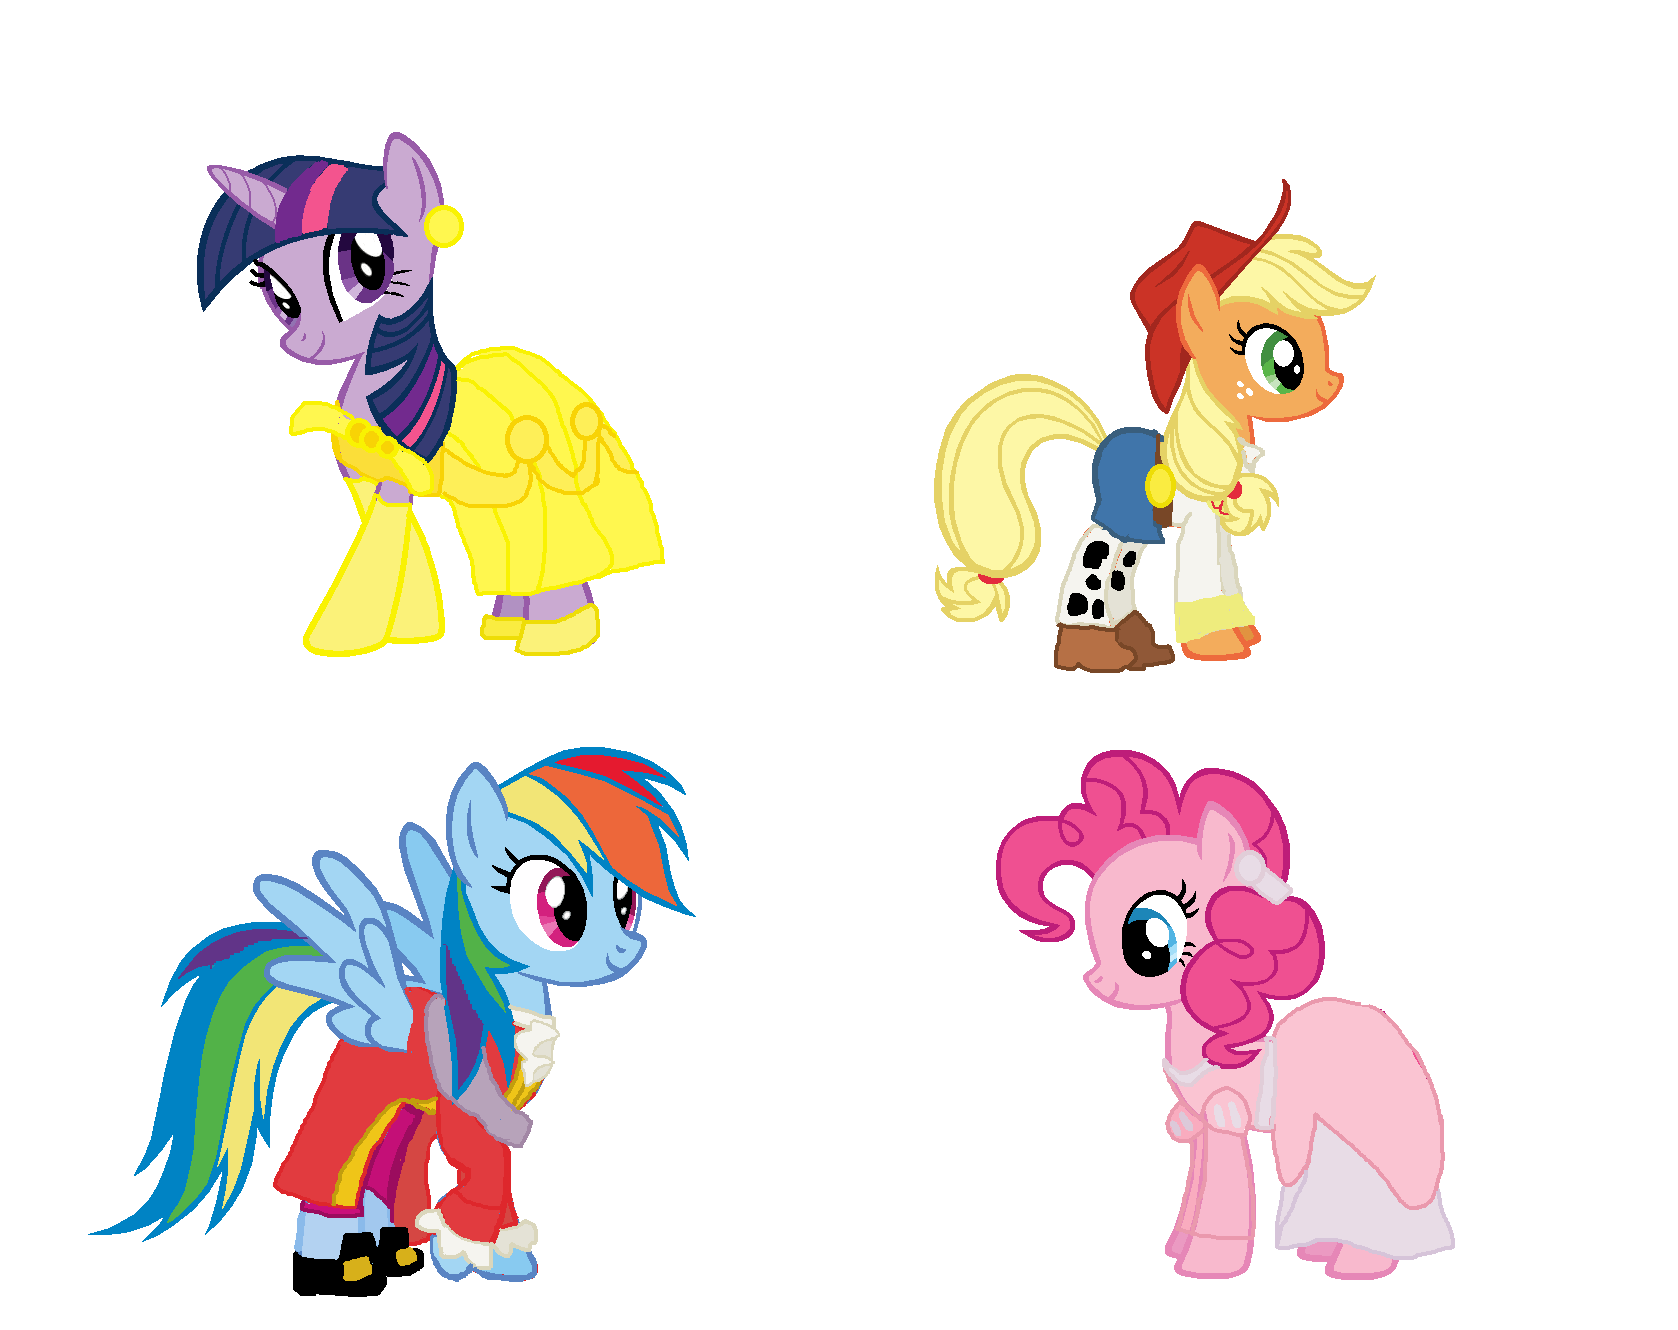 ... episode 5 from season 4.png - My Little Pony Friendship is Magic Wiki